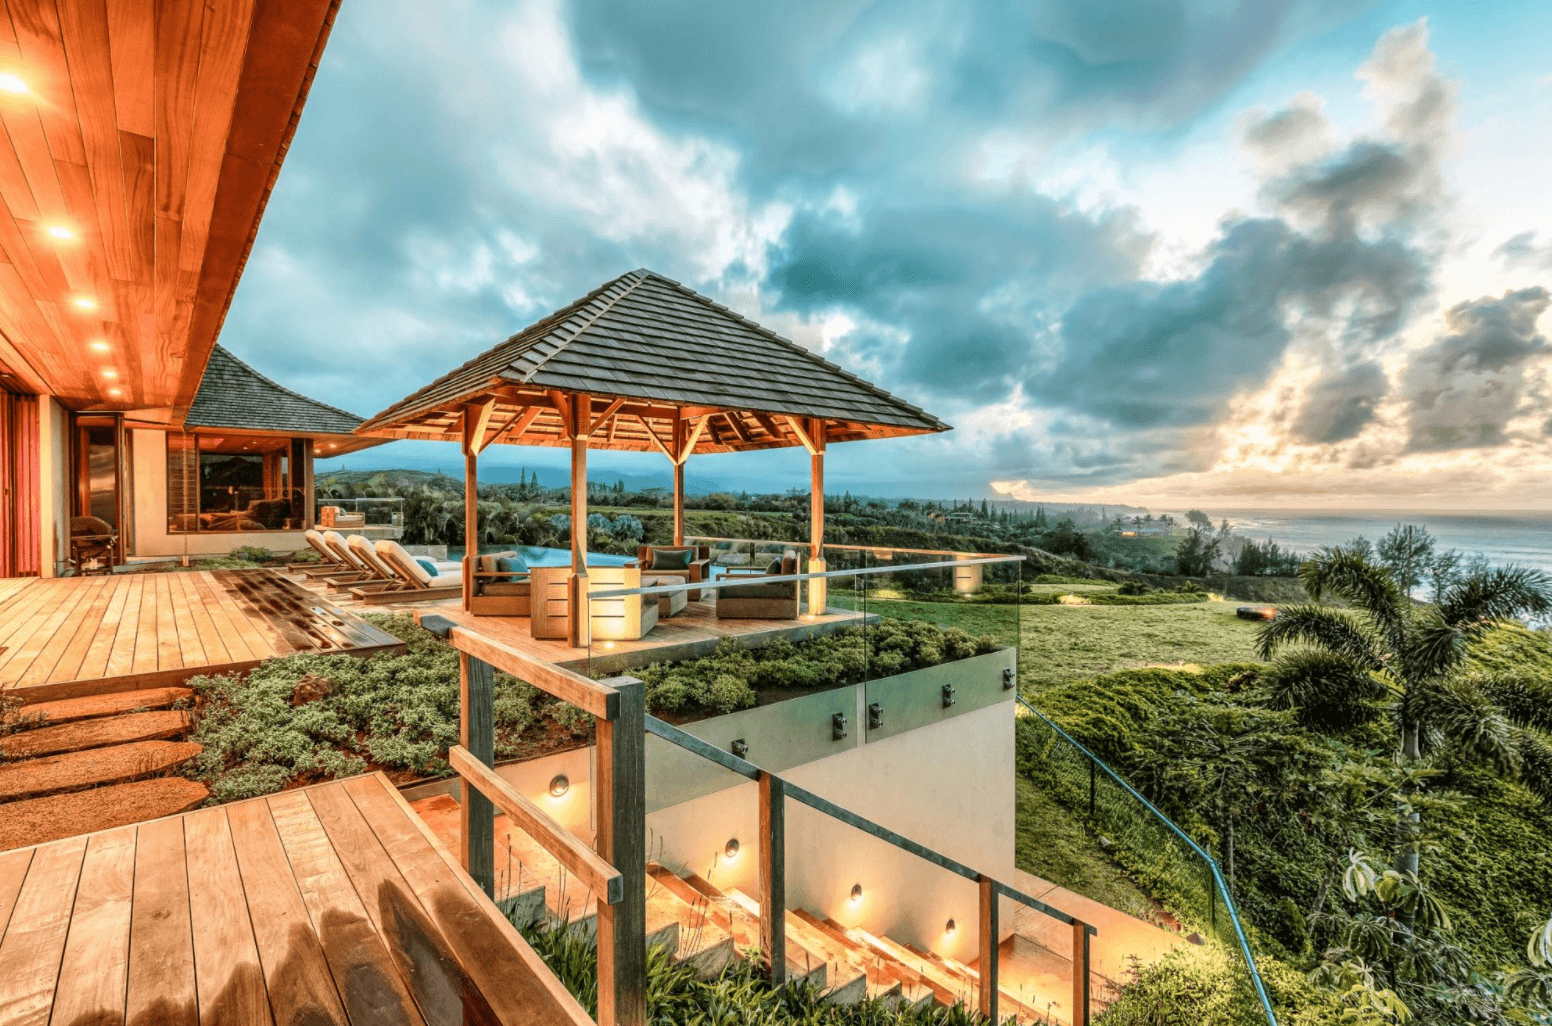 The Best Airbnbs in Kauai